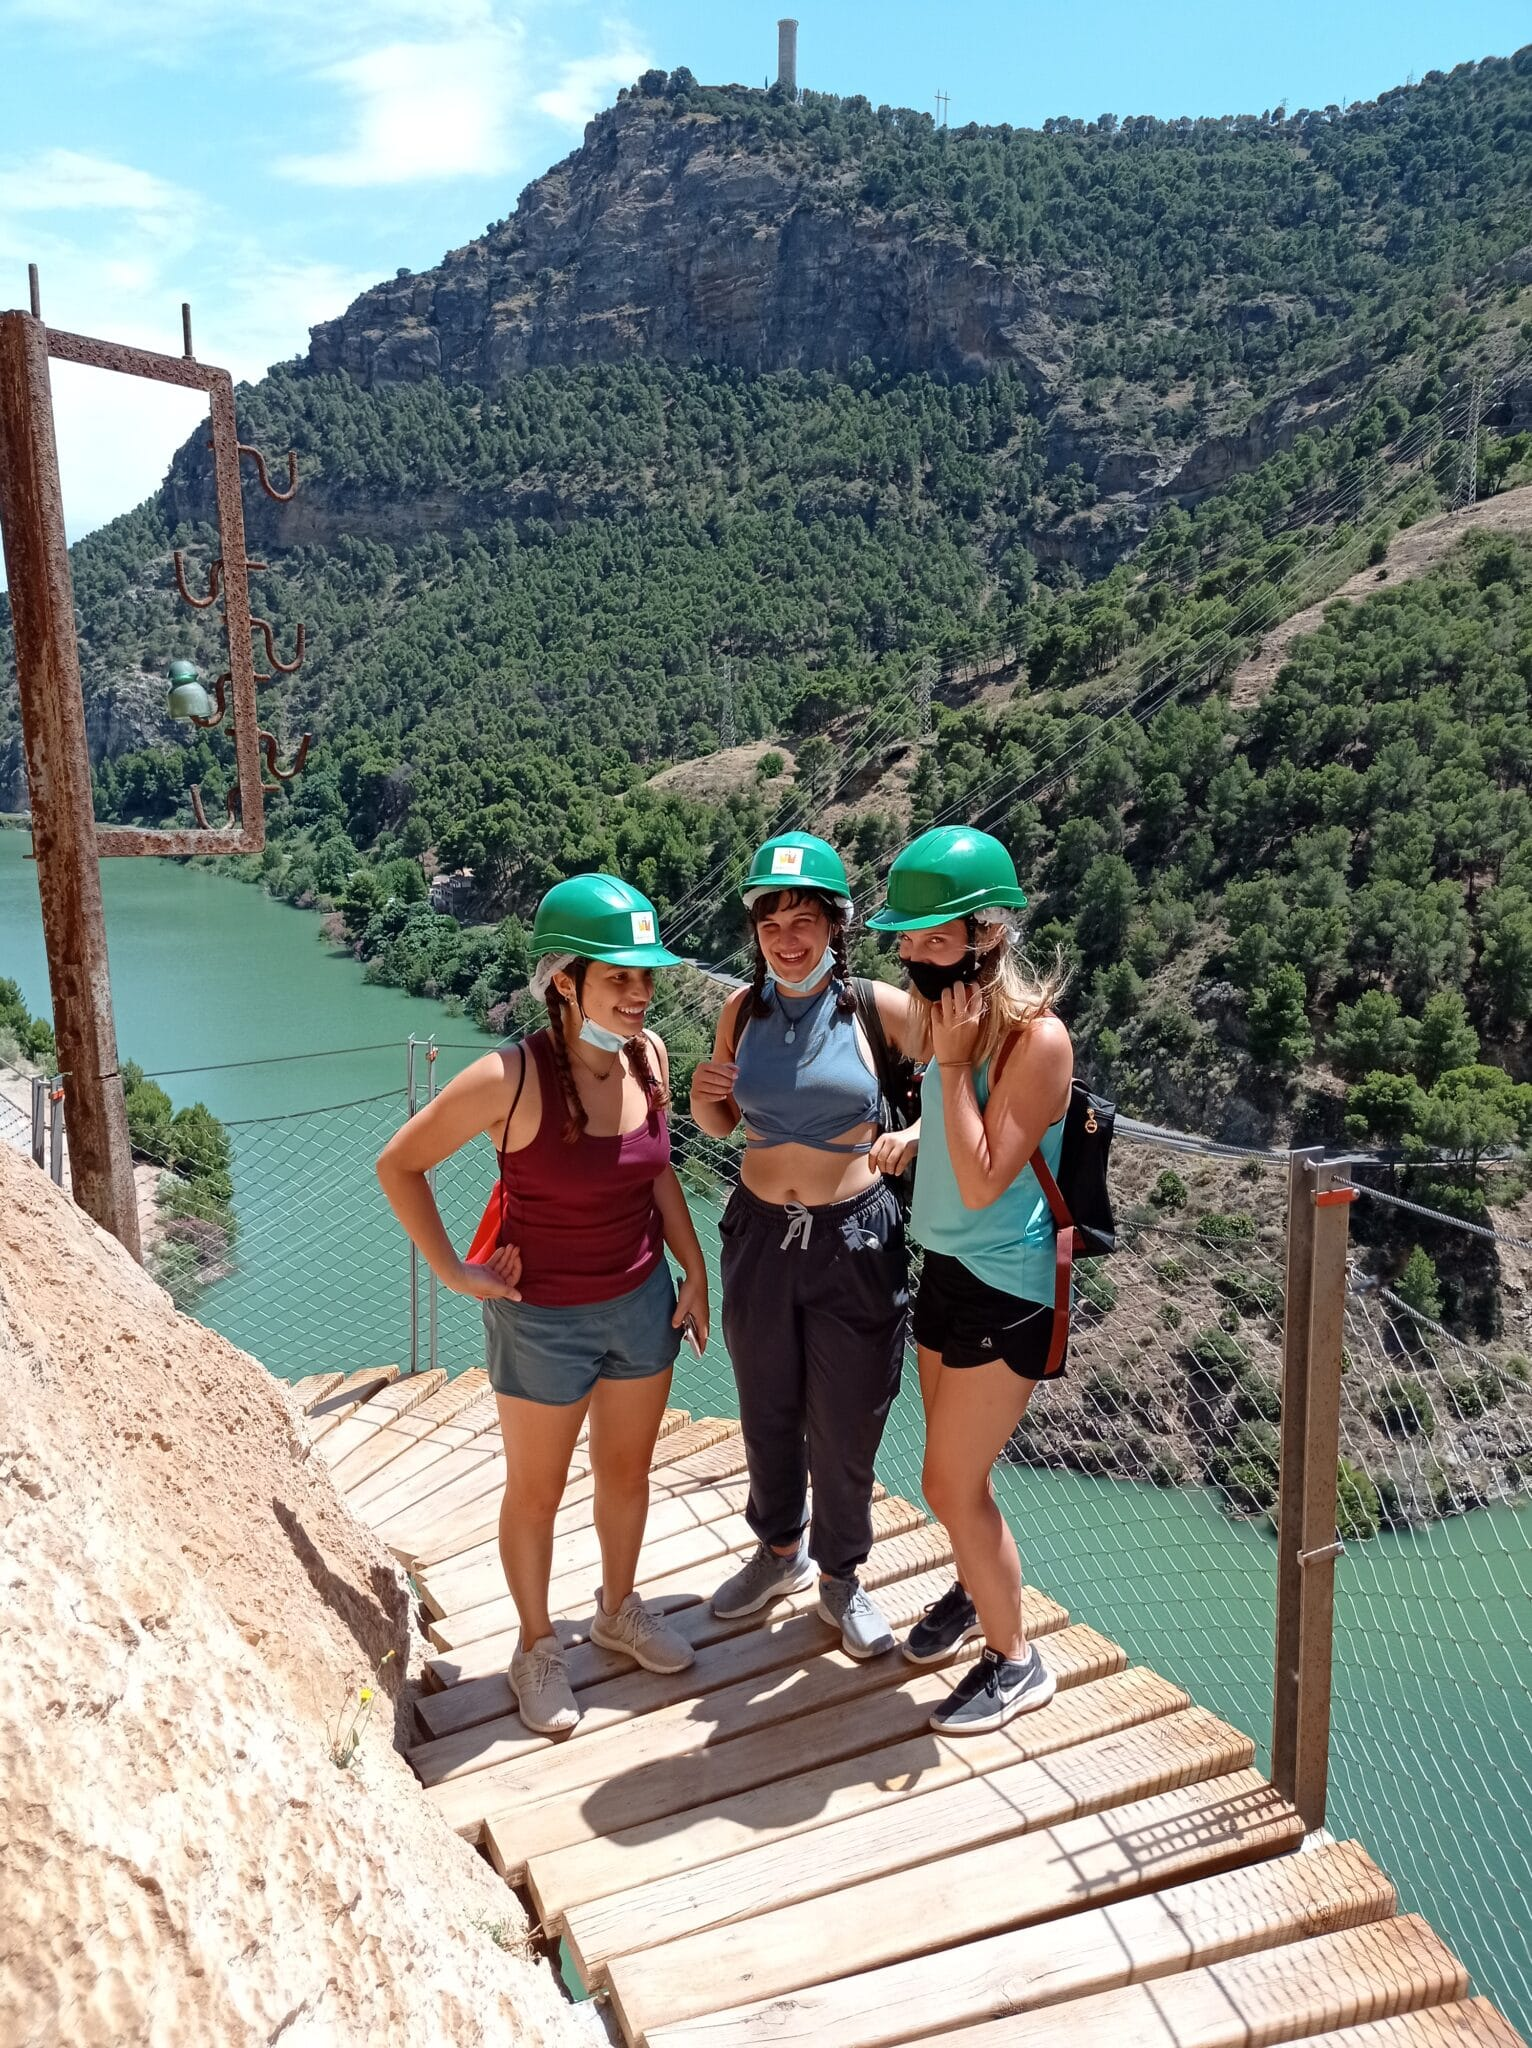 Tours and excursions in Spain